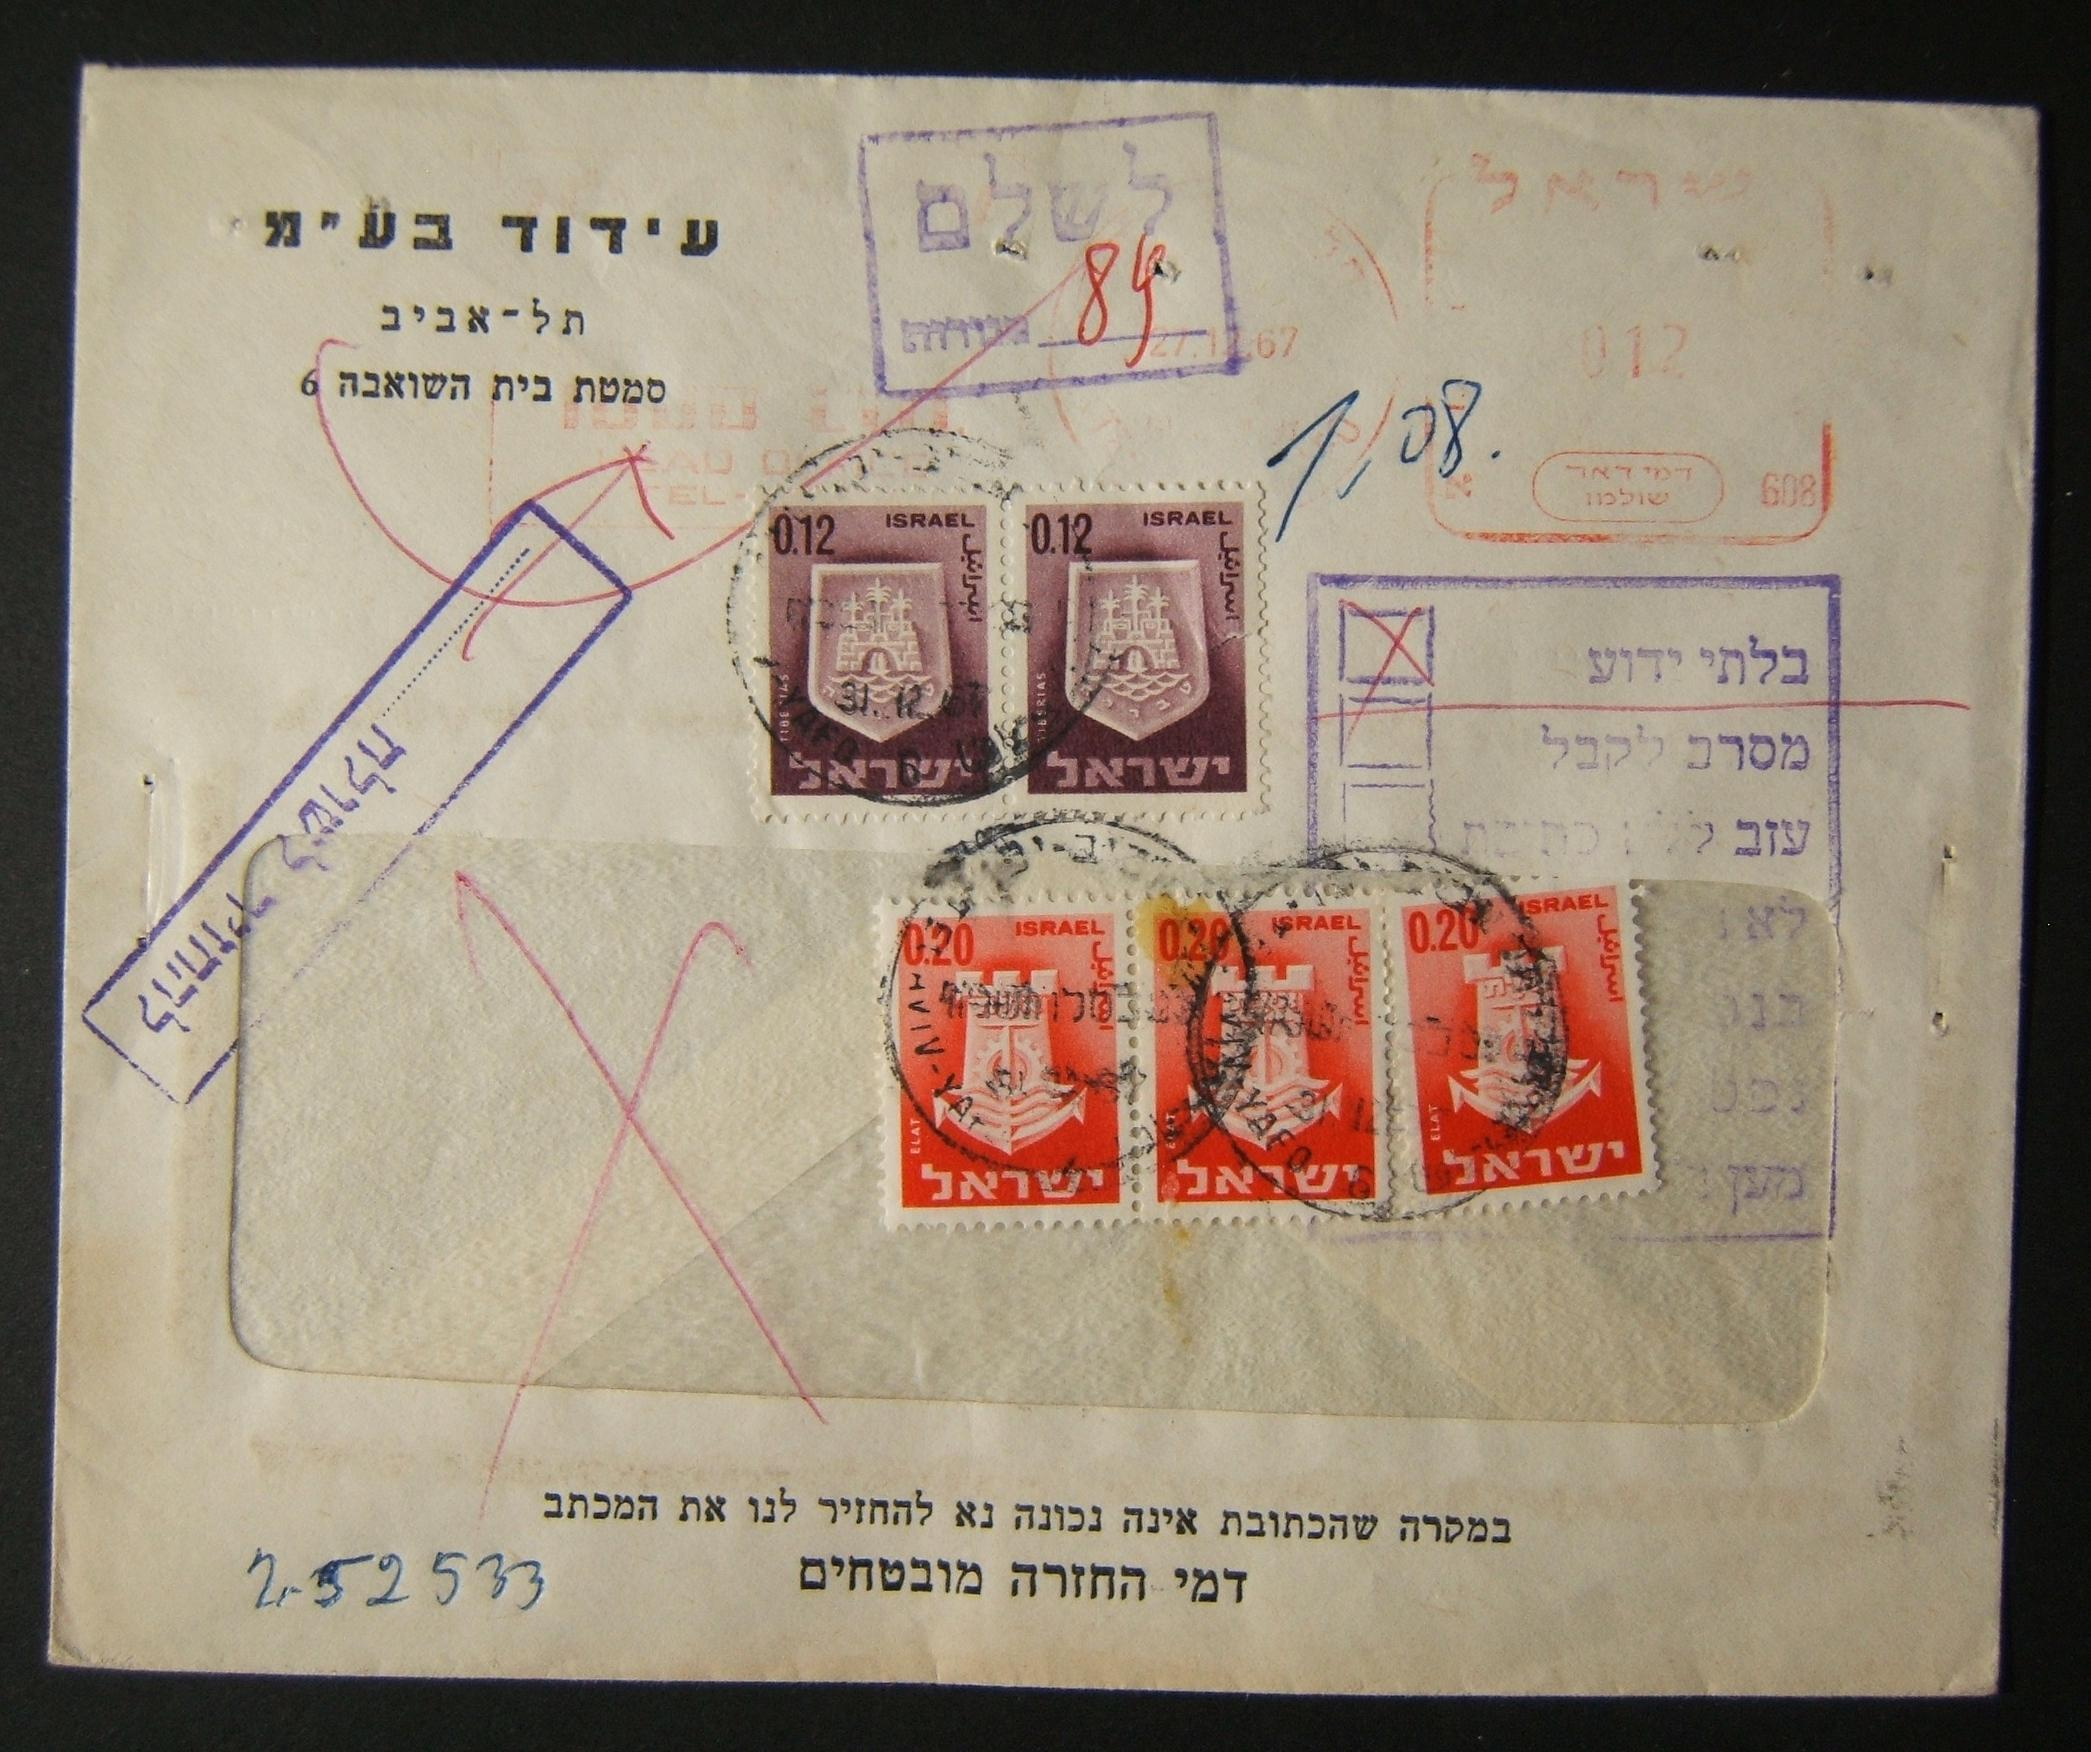 1967 domestic 'top of the pile' taxed franking: 27-12-67 printed matter cover ex TLV branch of Idud Ltd. and franked by meter payment at the DO-12 period 12 Ag PM rate but returned